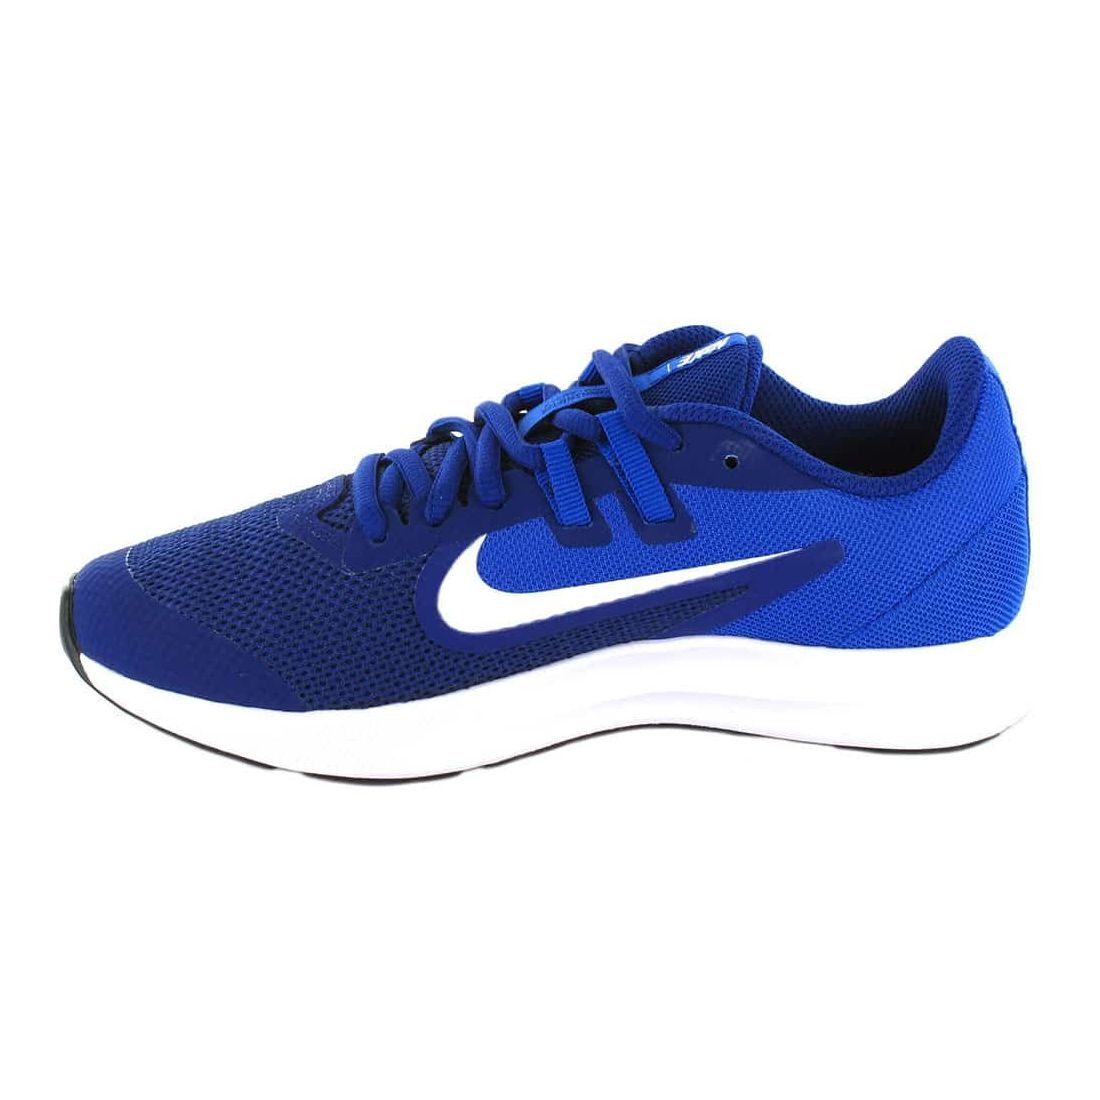 Nike Downshifter 9 GS 400 Tallas 37,5 Color Azul